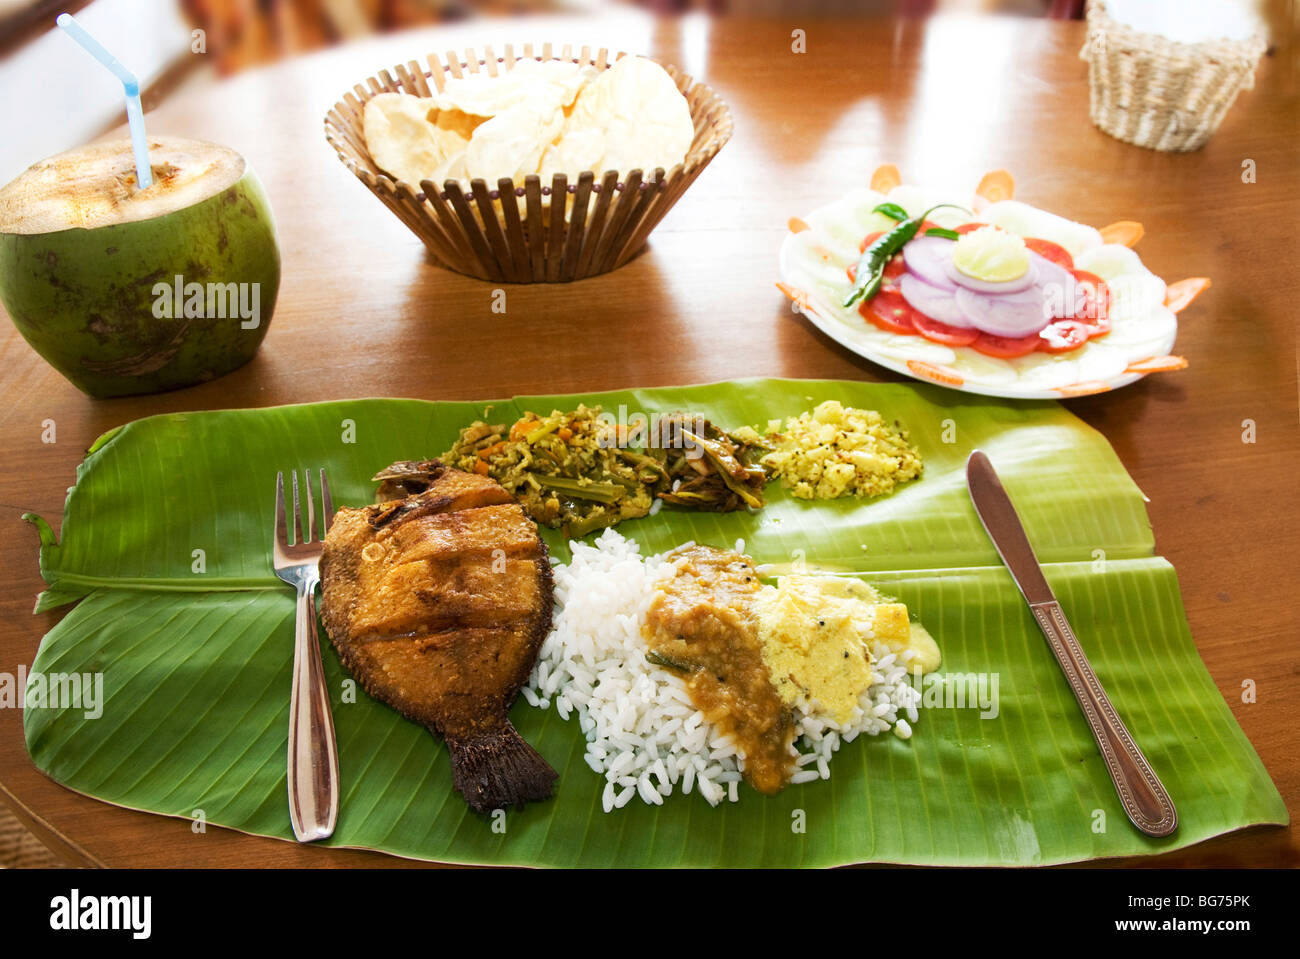 Rice dish with fish and curry served on palm leaf kerala for Rice dishes with fish